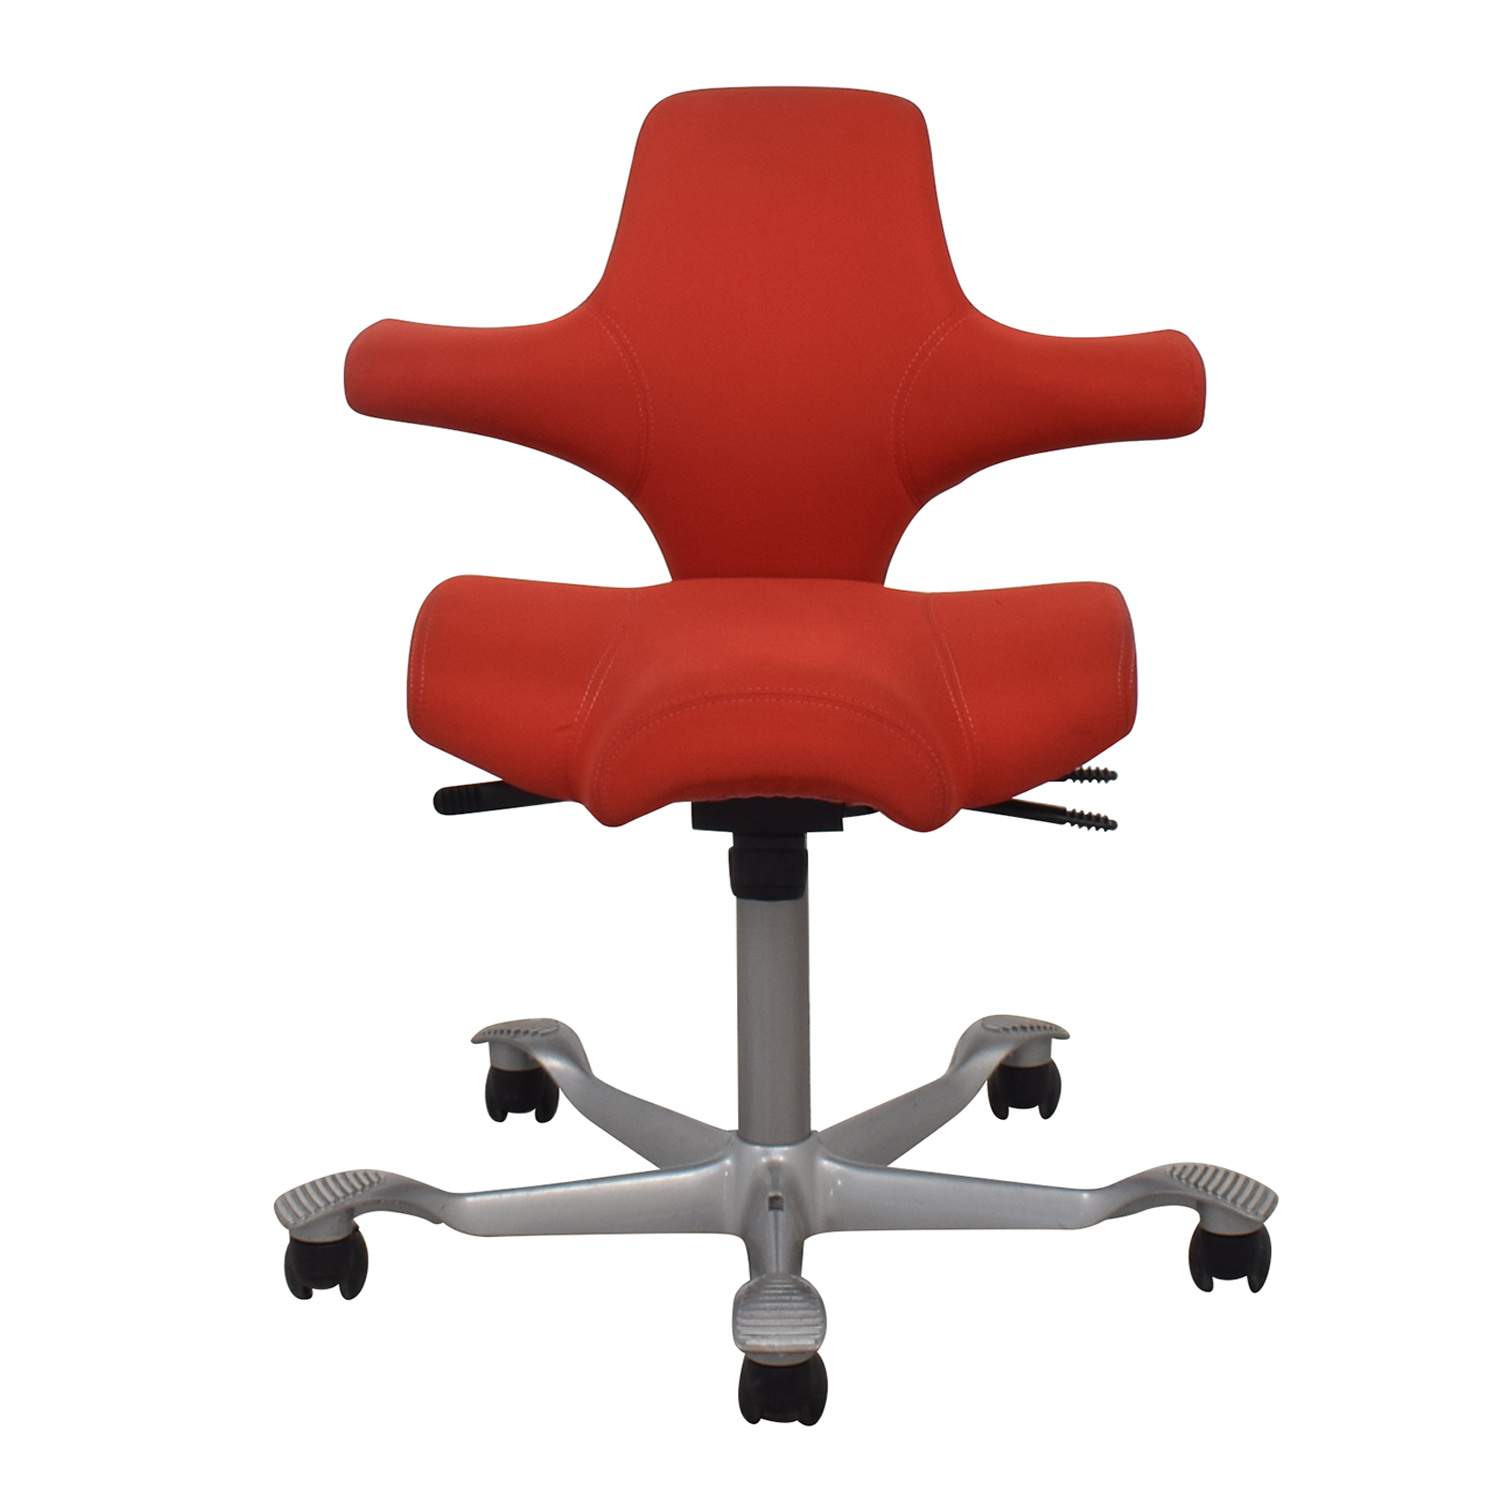 HAG HÅG Capisco Office Chair red